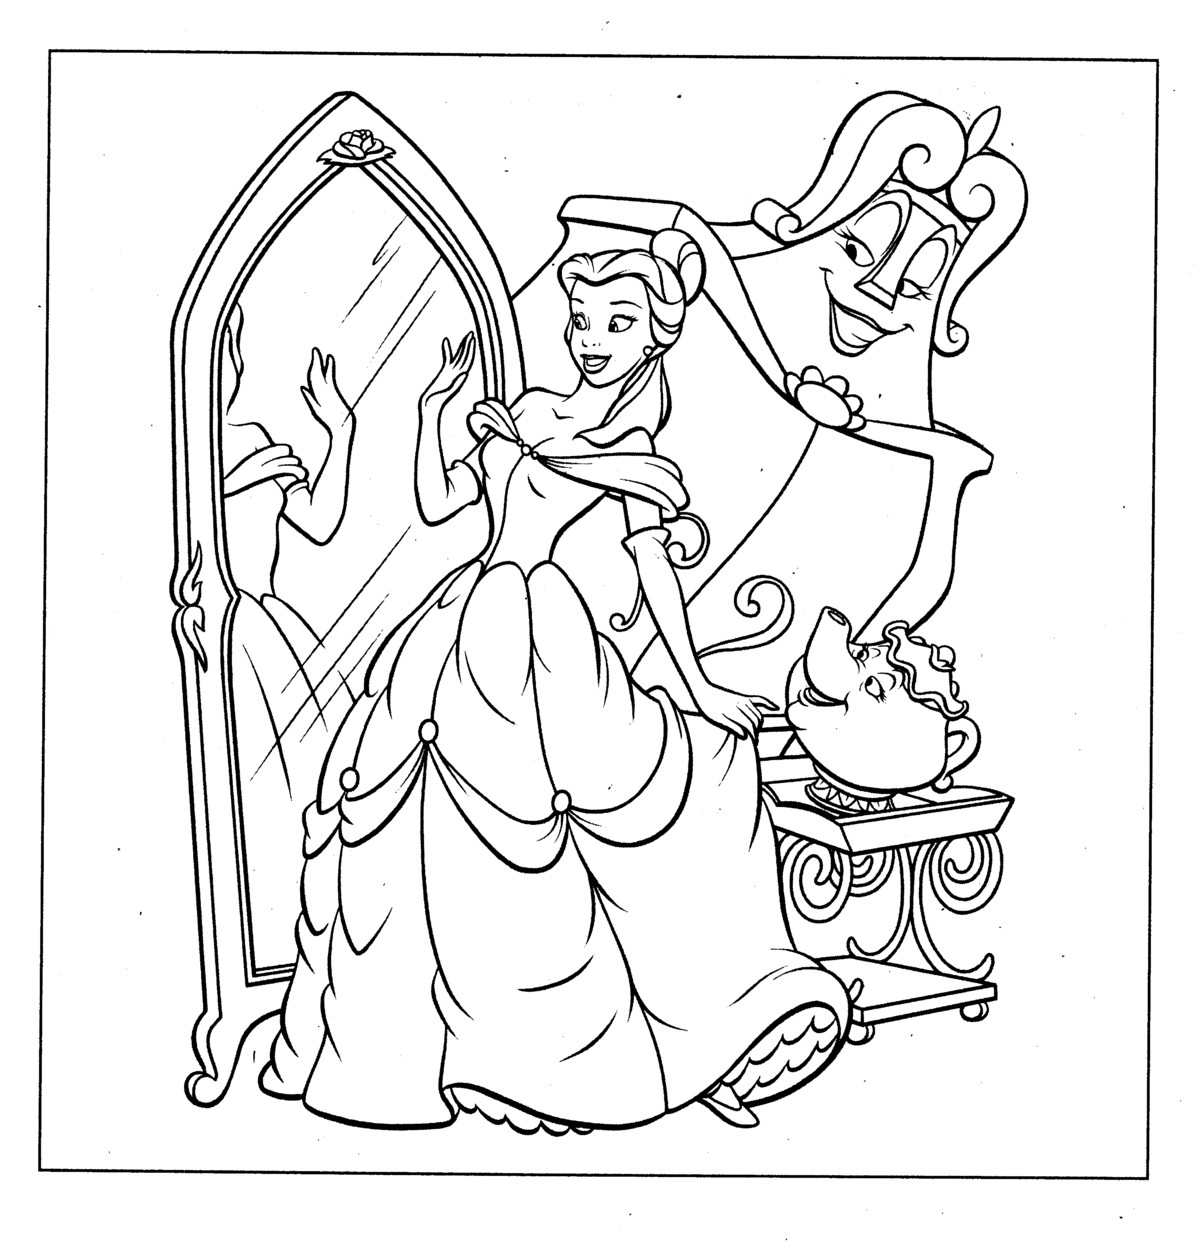 Free Printable Belle Coloring Pages For Kids Free Coloring Pages To Print